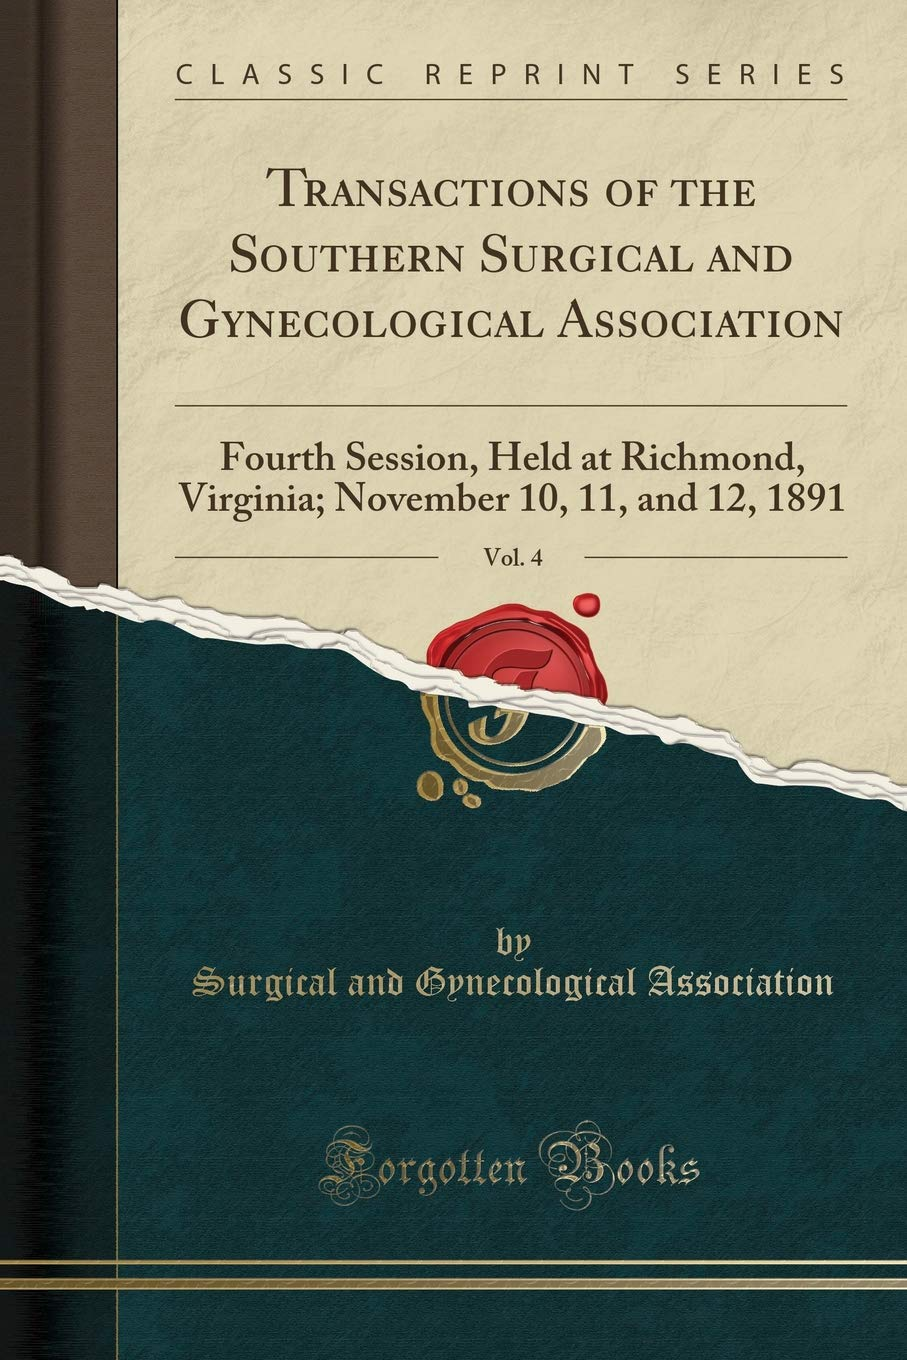 Transactions of the Southern Surgical and Gynecological Association, Vol. 4: Fourth Session, Held at Richmond, Virginia; November 10, 11, and 12, 1891 (Classic Reprint) by Forgotten Books